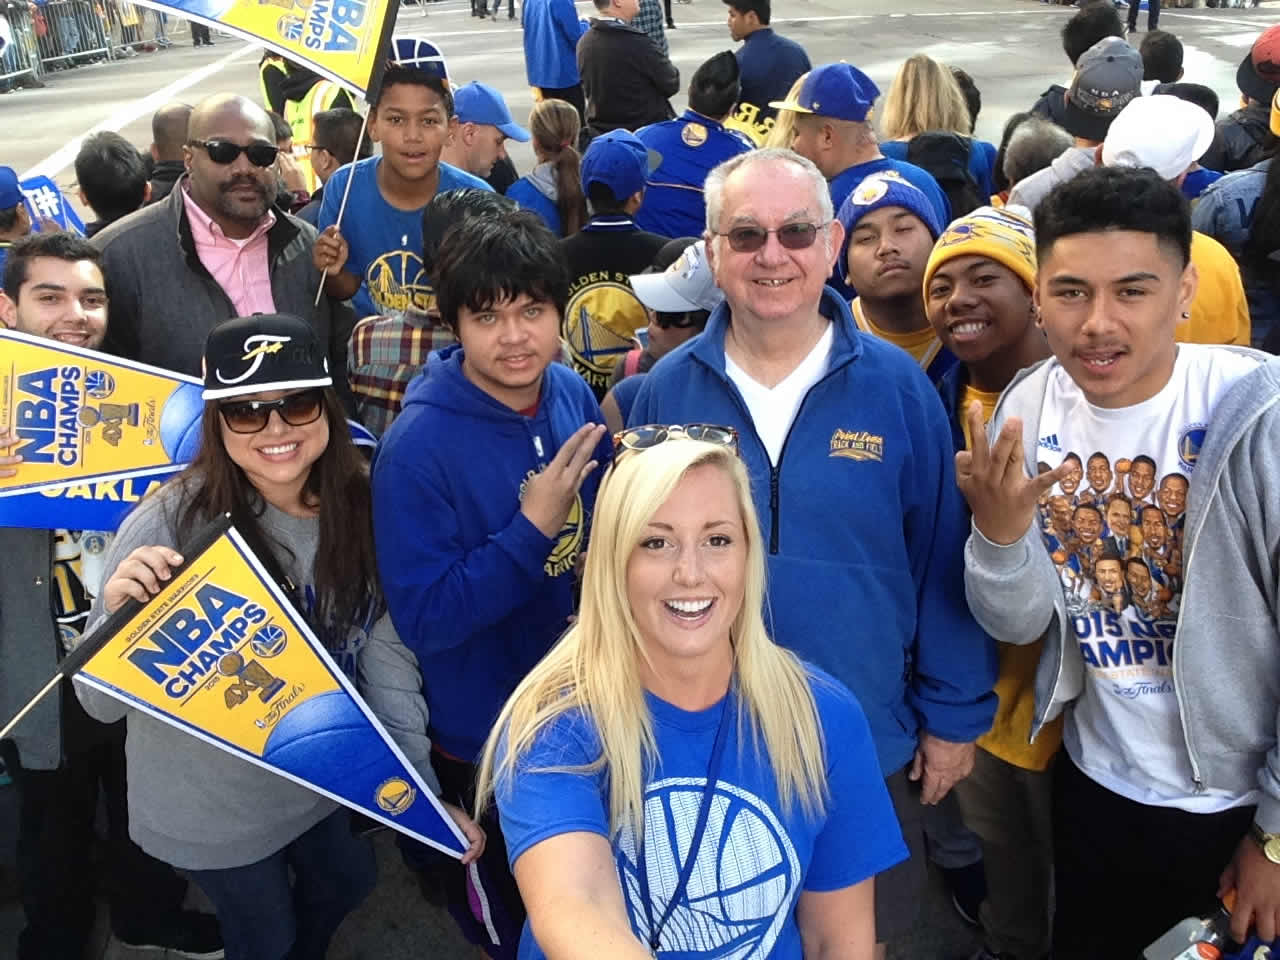 "<div class=""meta image-caption""><div class=""origin-logo origin-image none""><span>none</span></div><span class=""caption-text"">Warriors fans at the Golden State Warriors parade in Oakland on Friday, June 19, 2015. (ABC7 News/Kayla Clark)</span></div>"